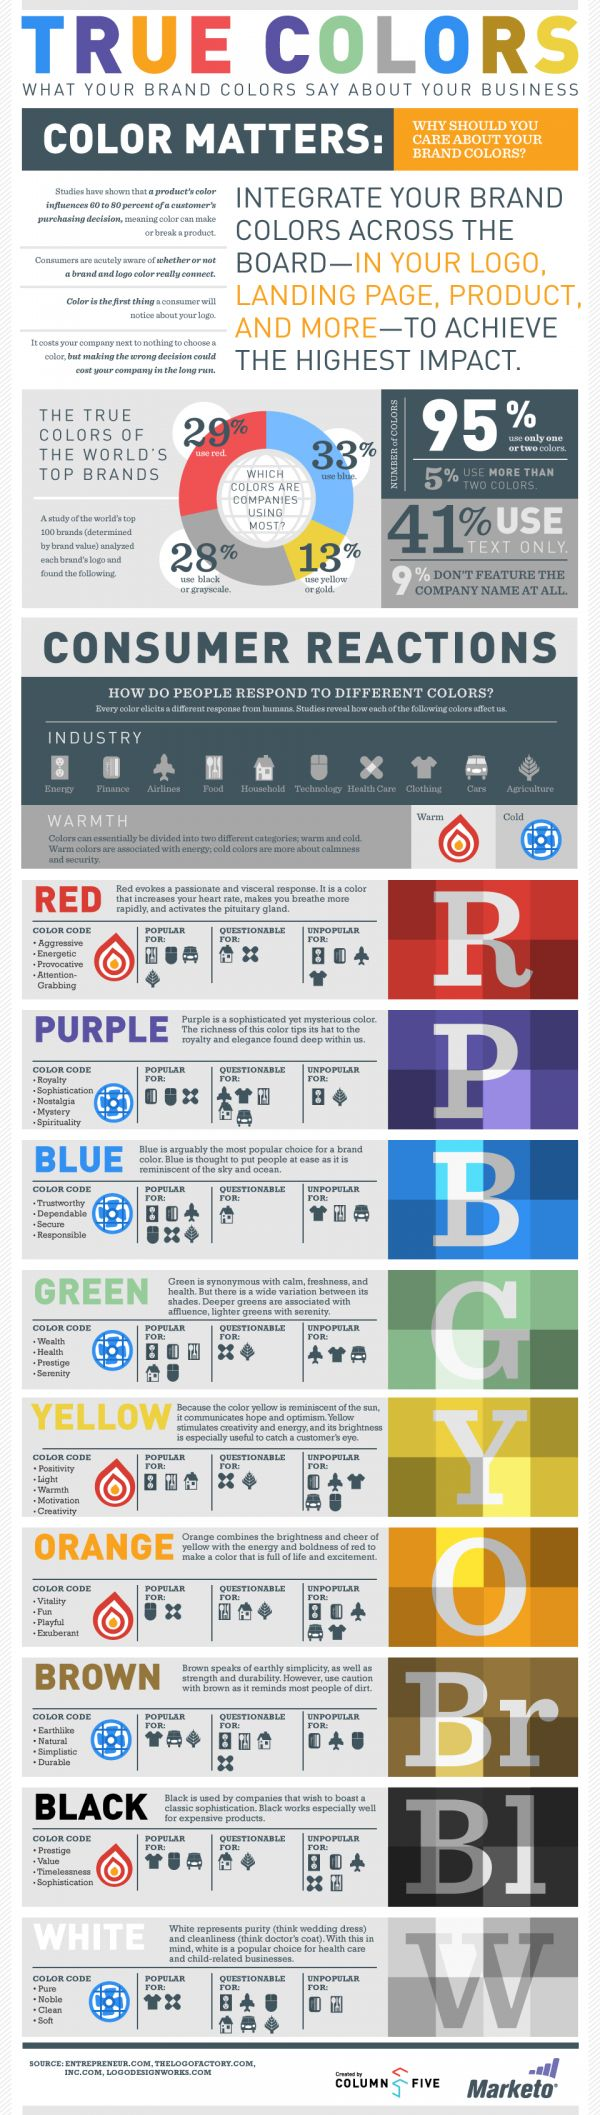 Marketo Color Matters